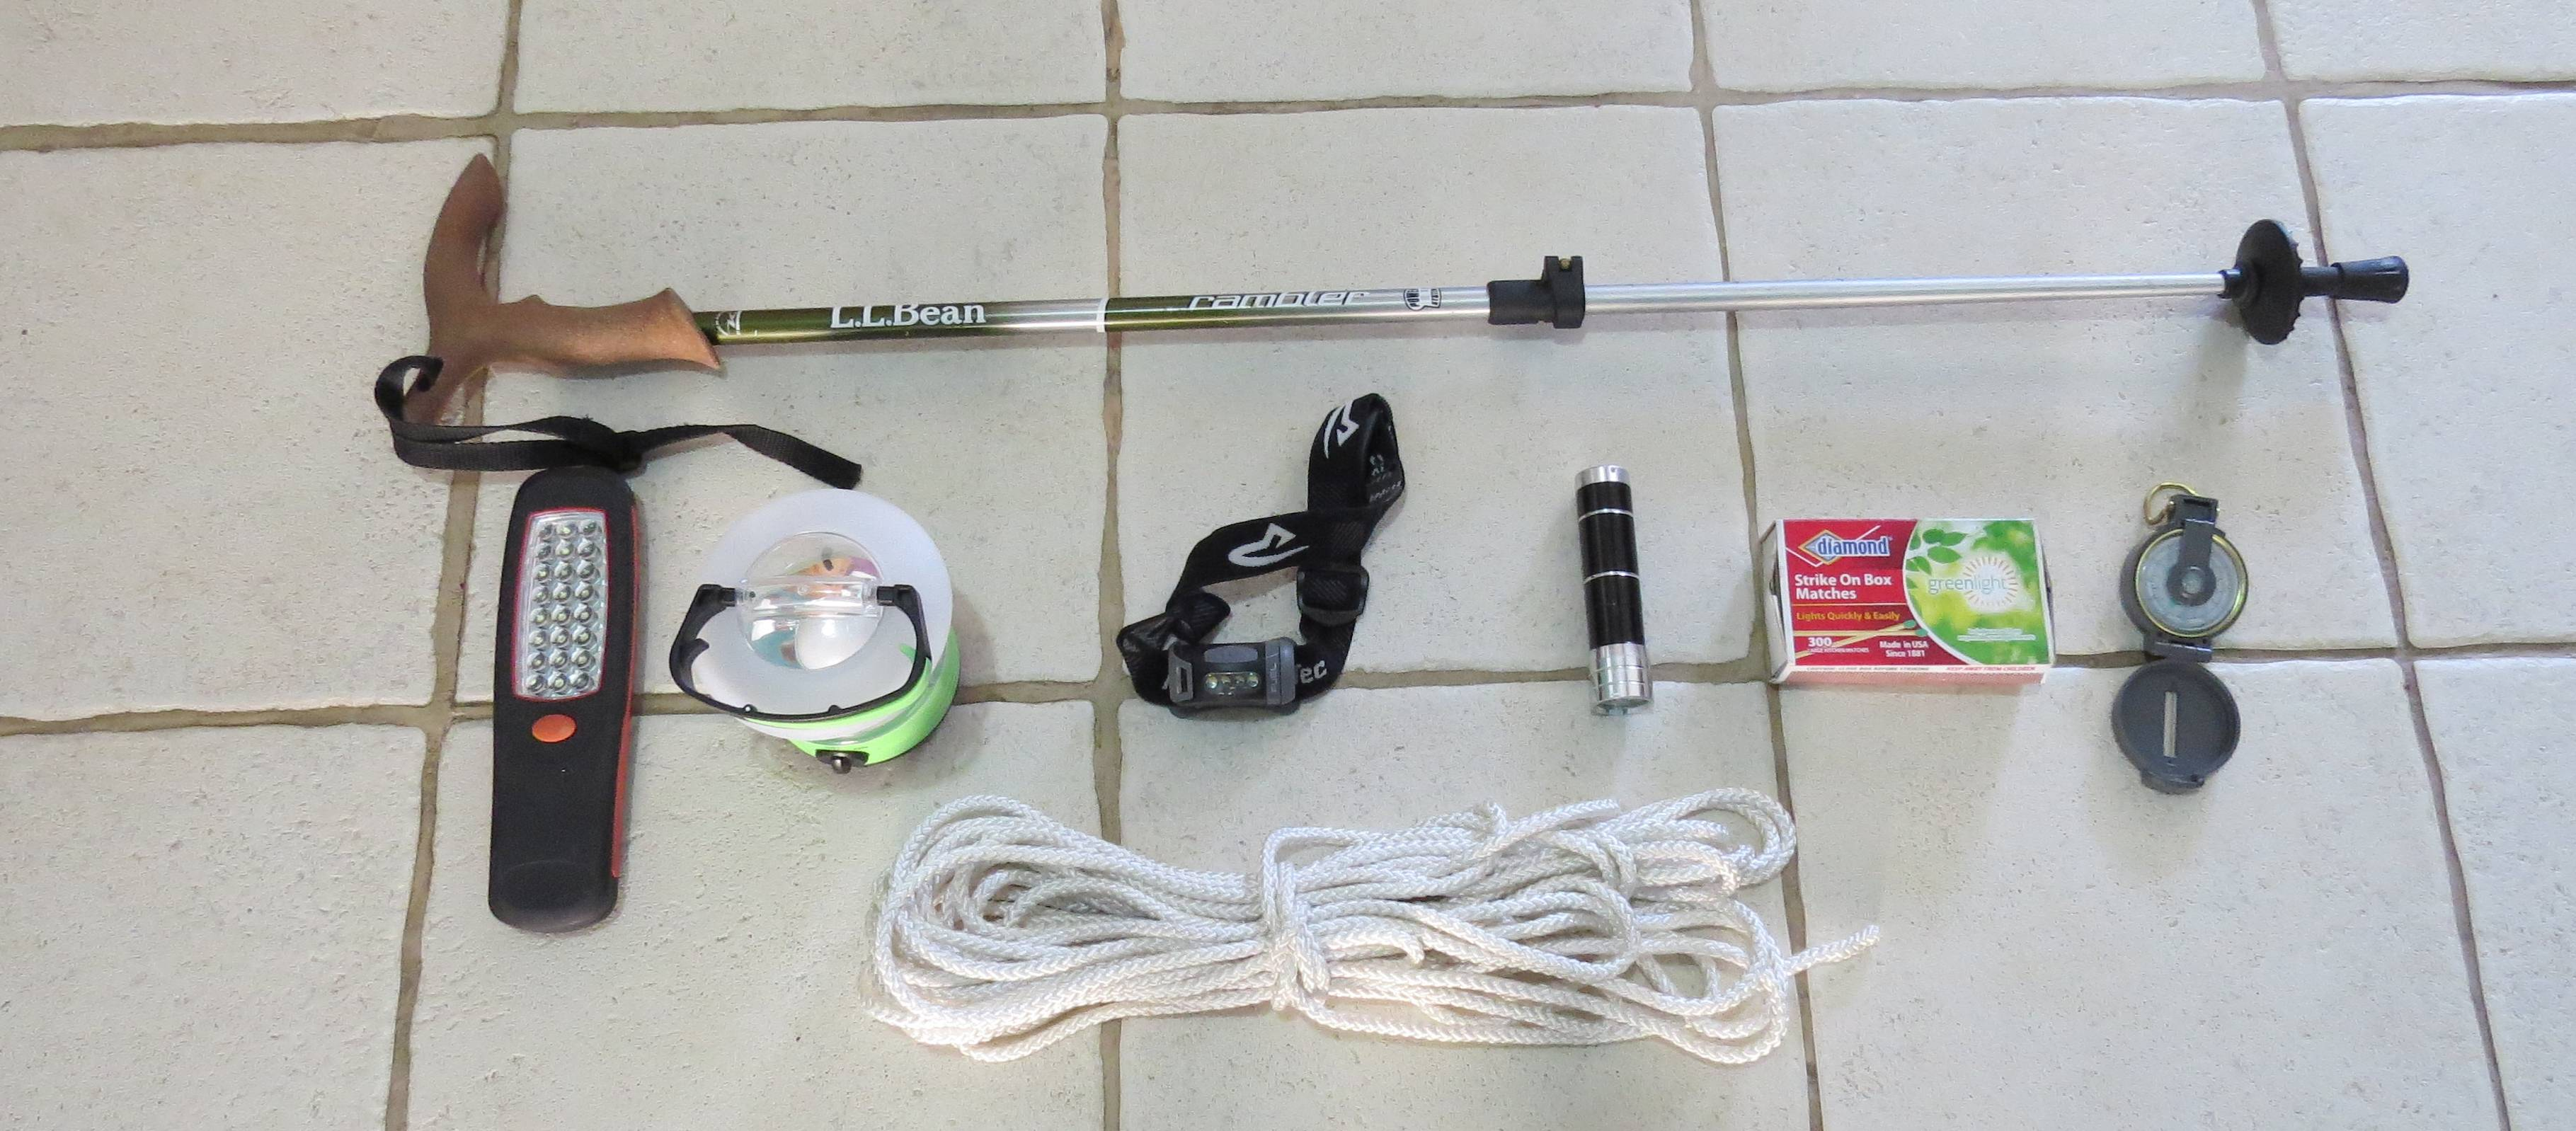 Preparing for a camping trip -gadgets influding flashlights, rope, compass and walking stick